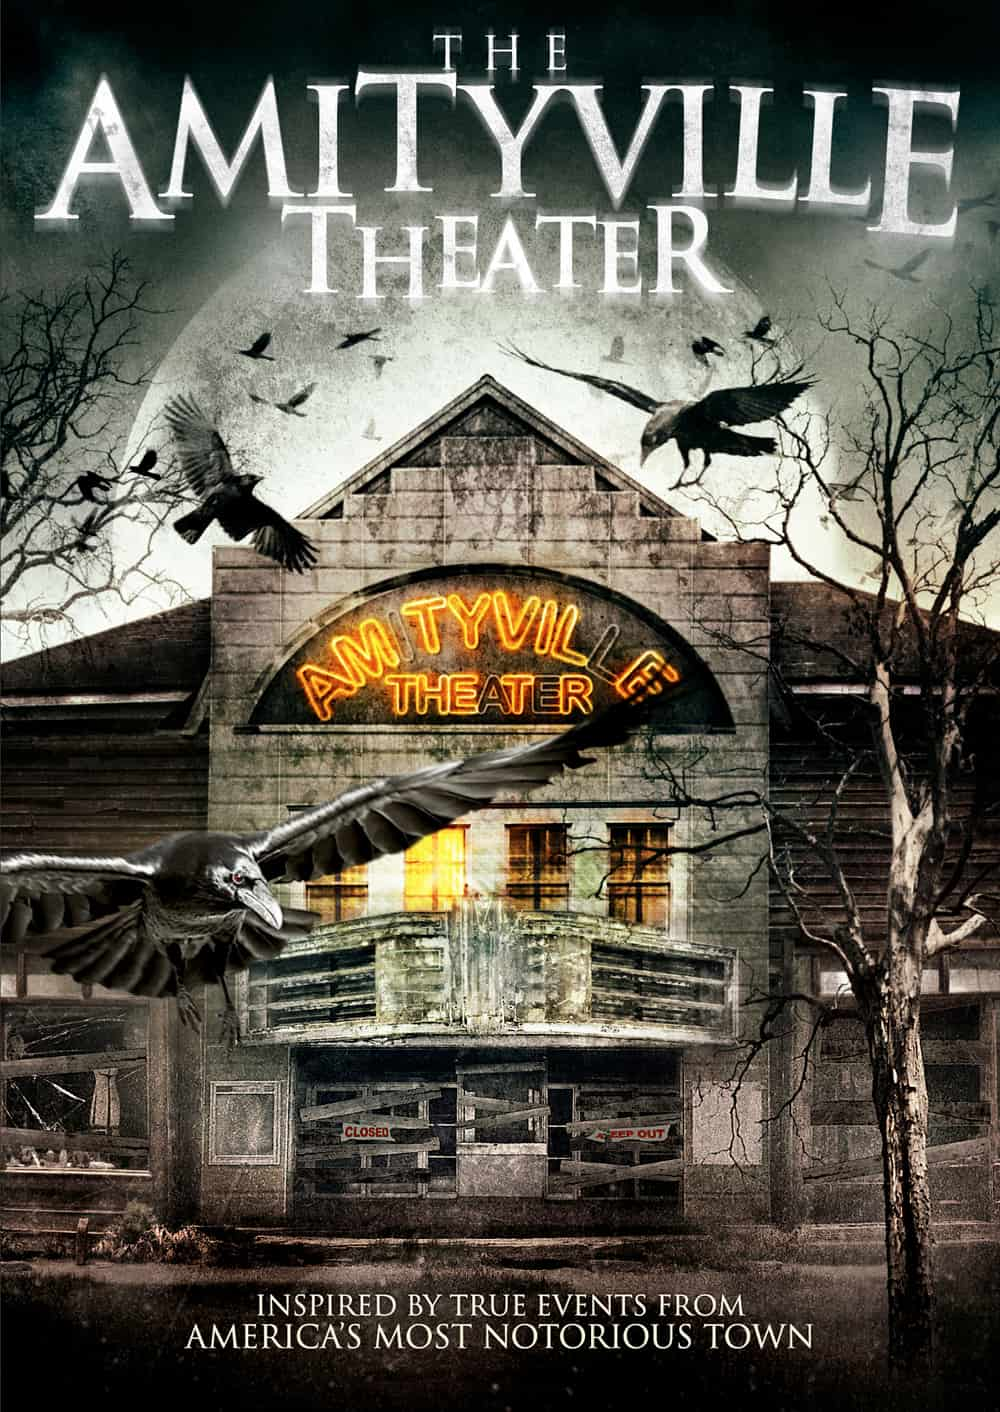 The Amityville Theatre